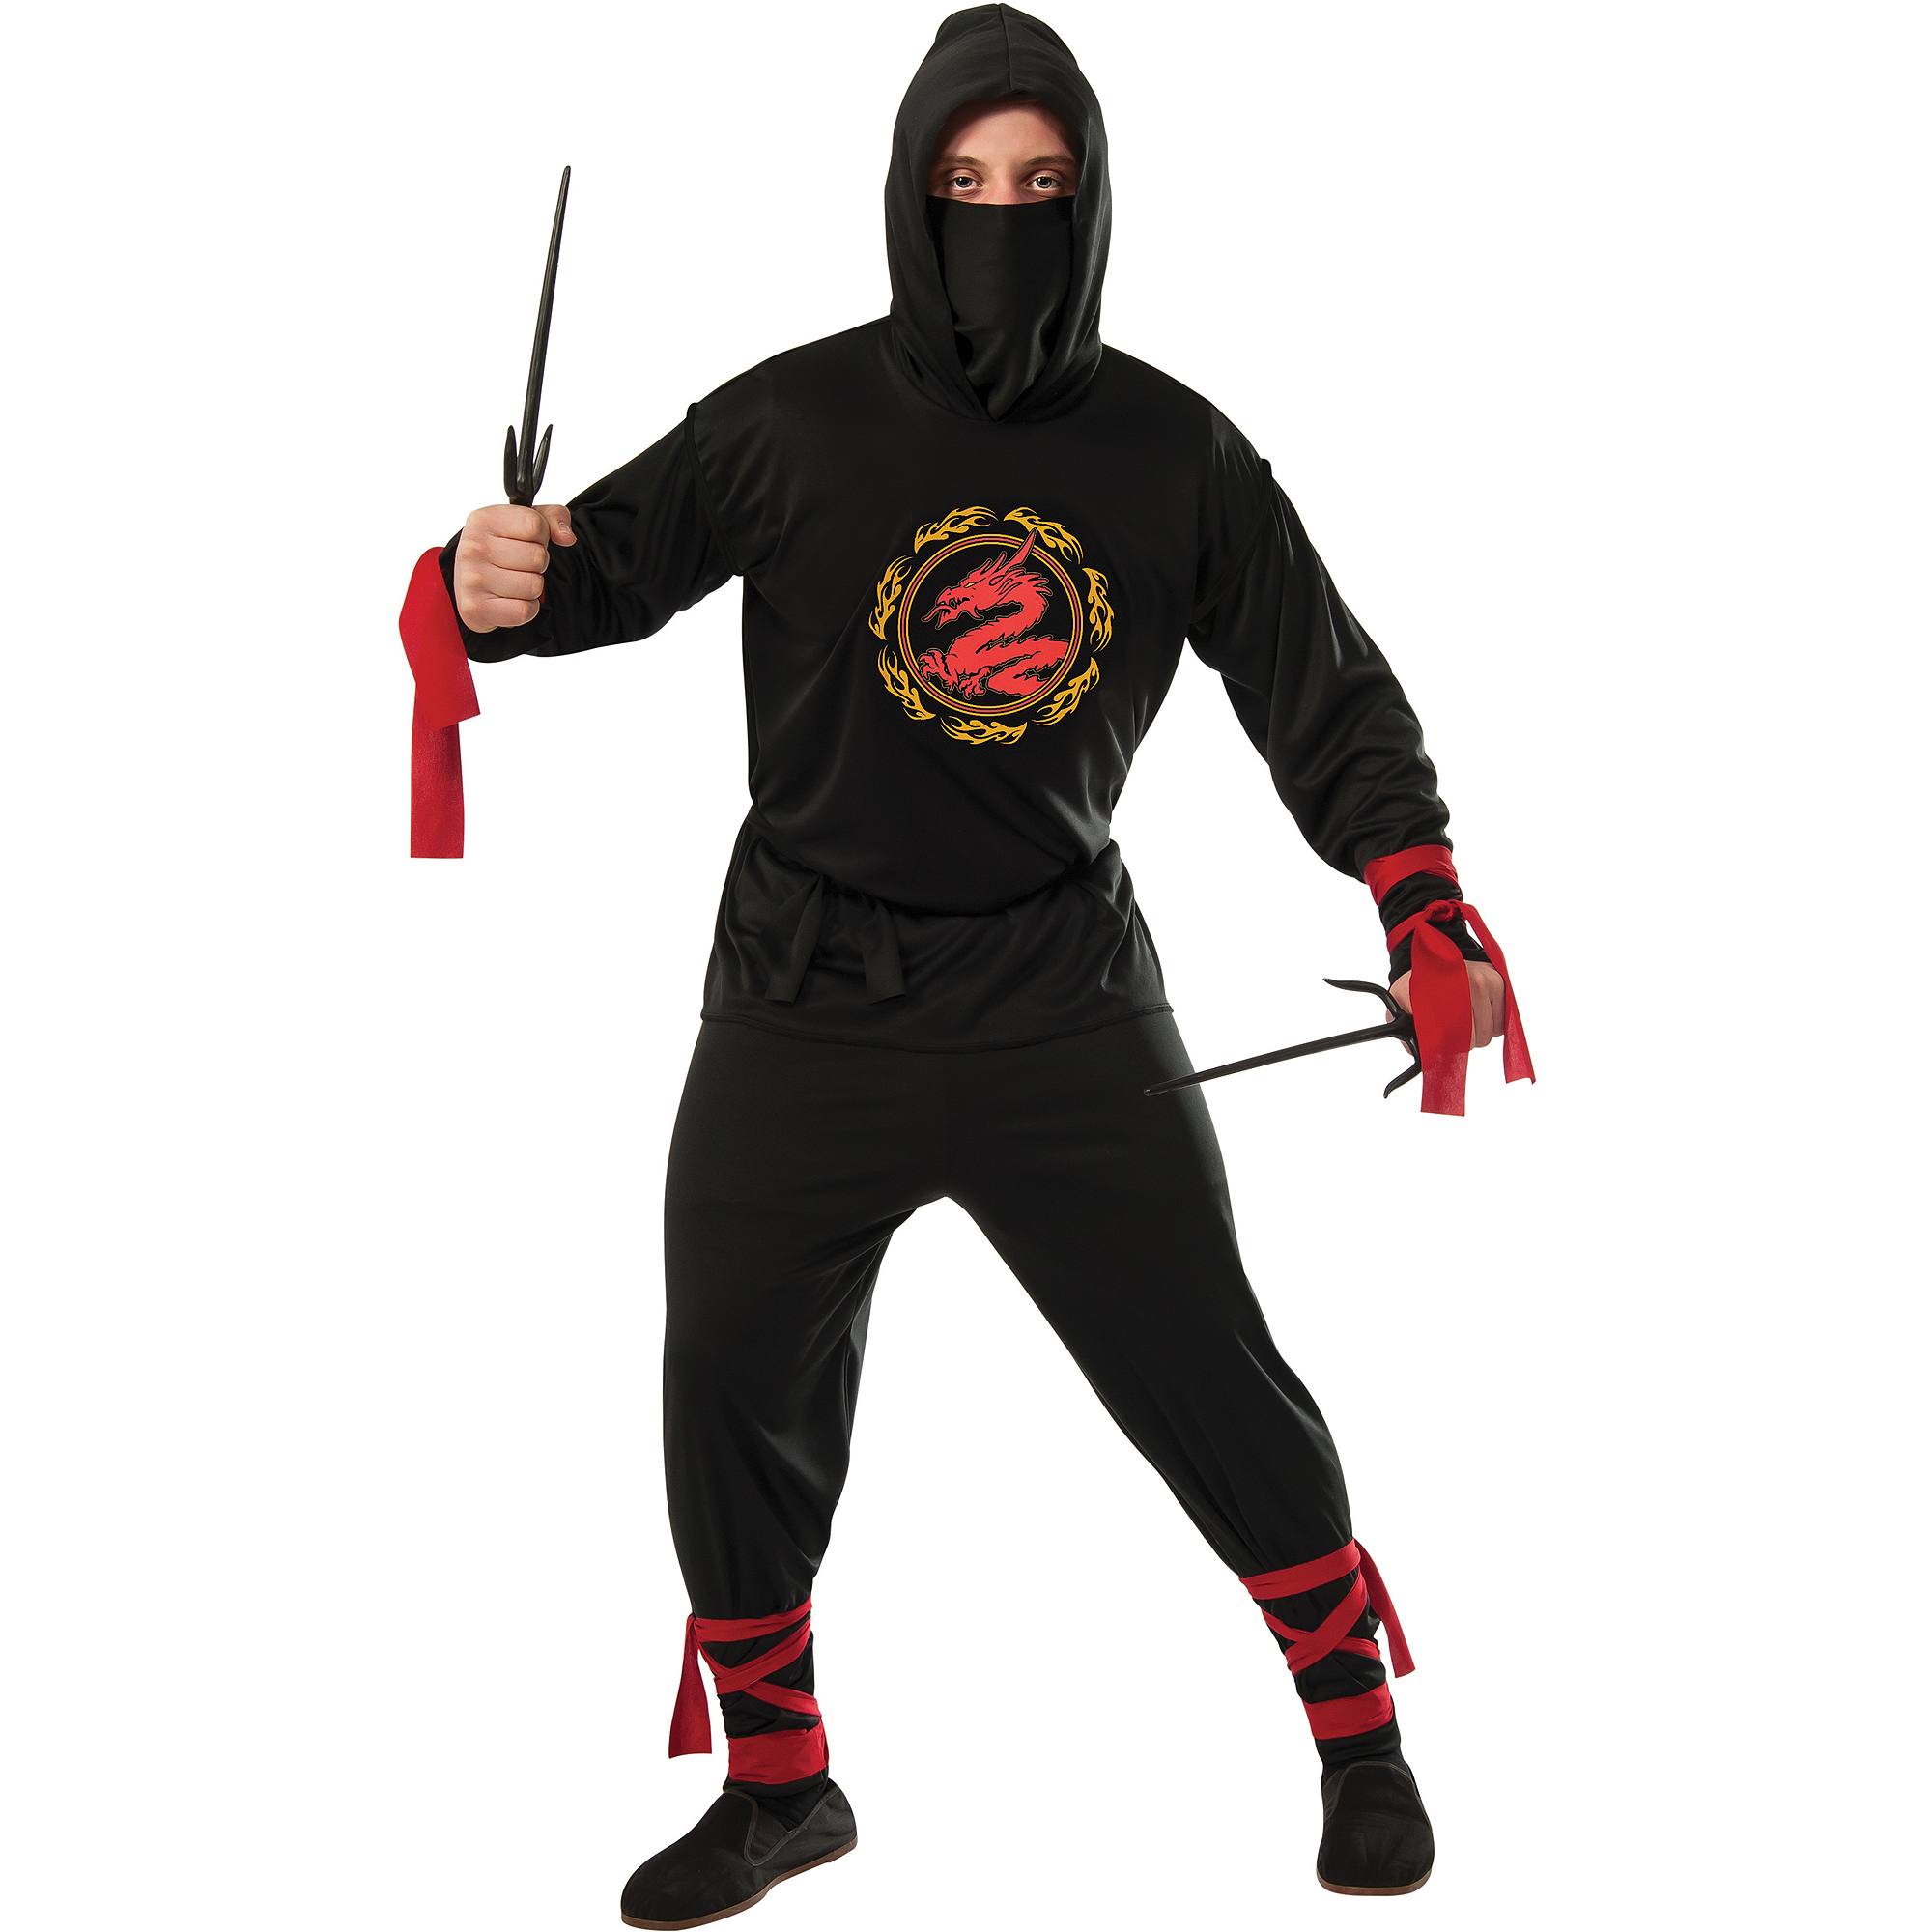 Black Ninja Mens Halloween Costume  sc 1 st  Walmart & Black Ninja Mens Halloween Costume - Walmart.com